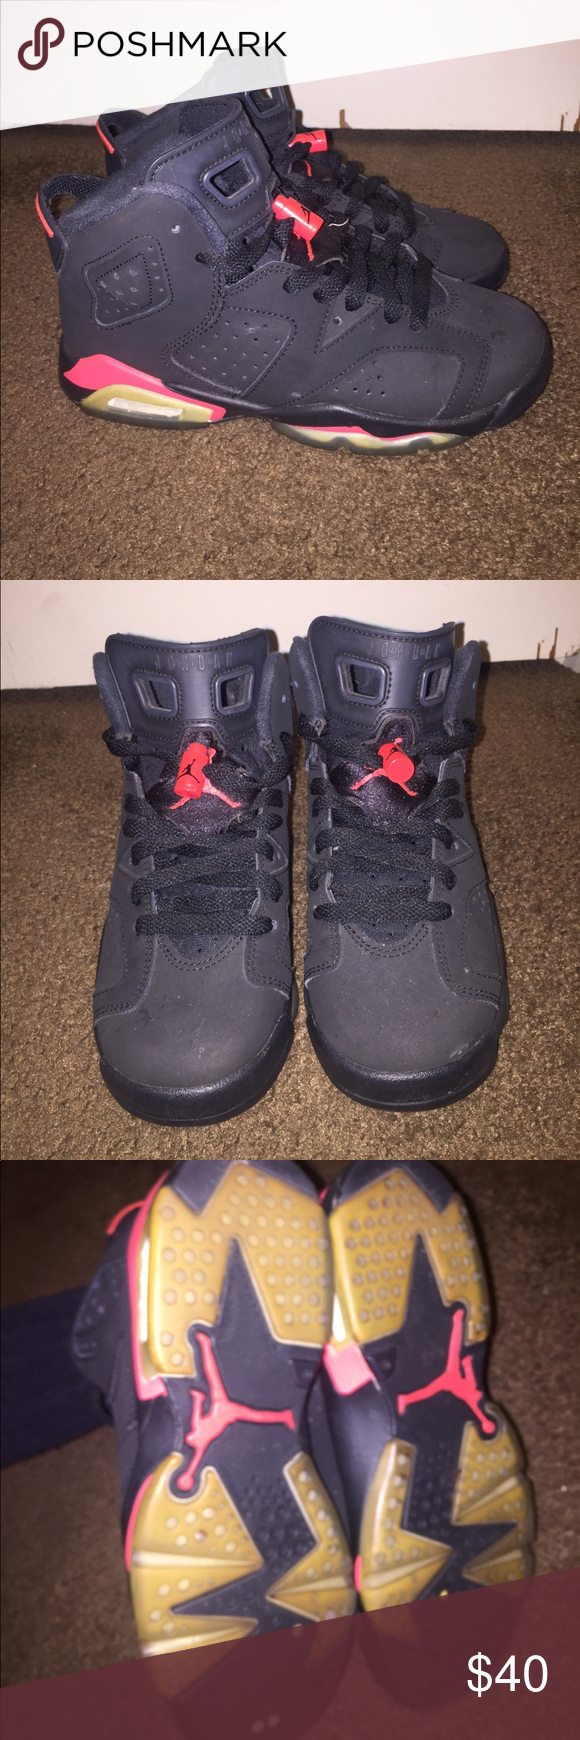 Jordan Retro 6 - size boys 4Y In great condition. Soles had been removed  before so the soles have never been worn, sneakers worn only a few times,  no crease ...